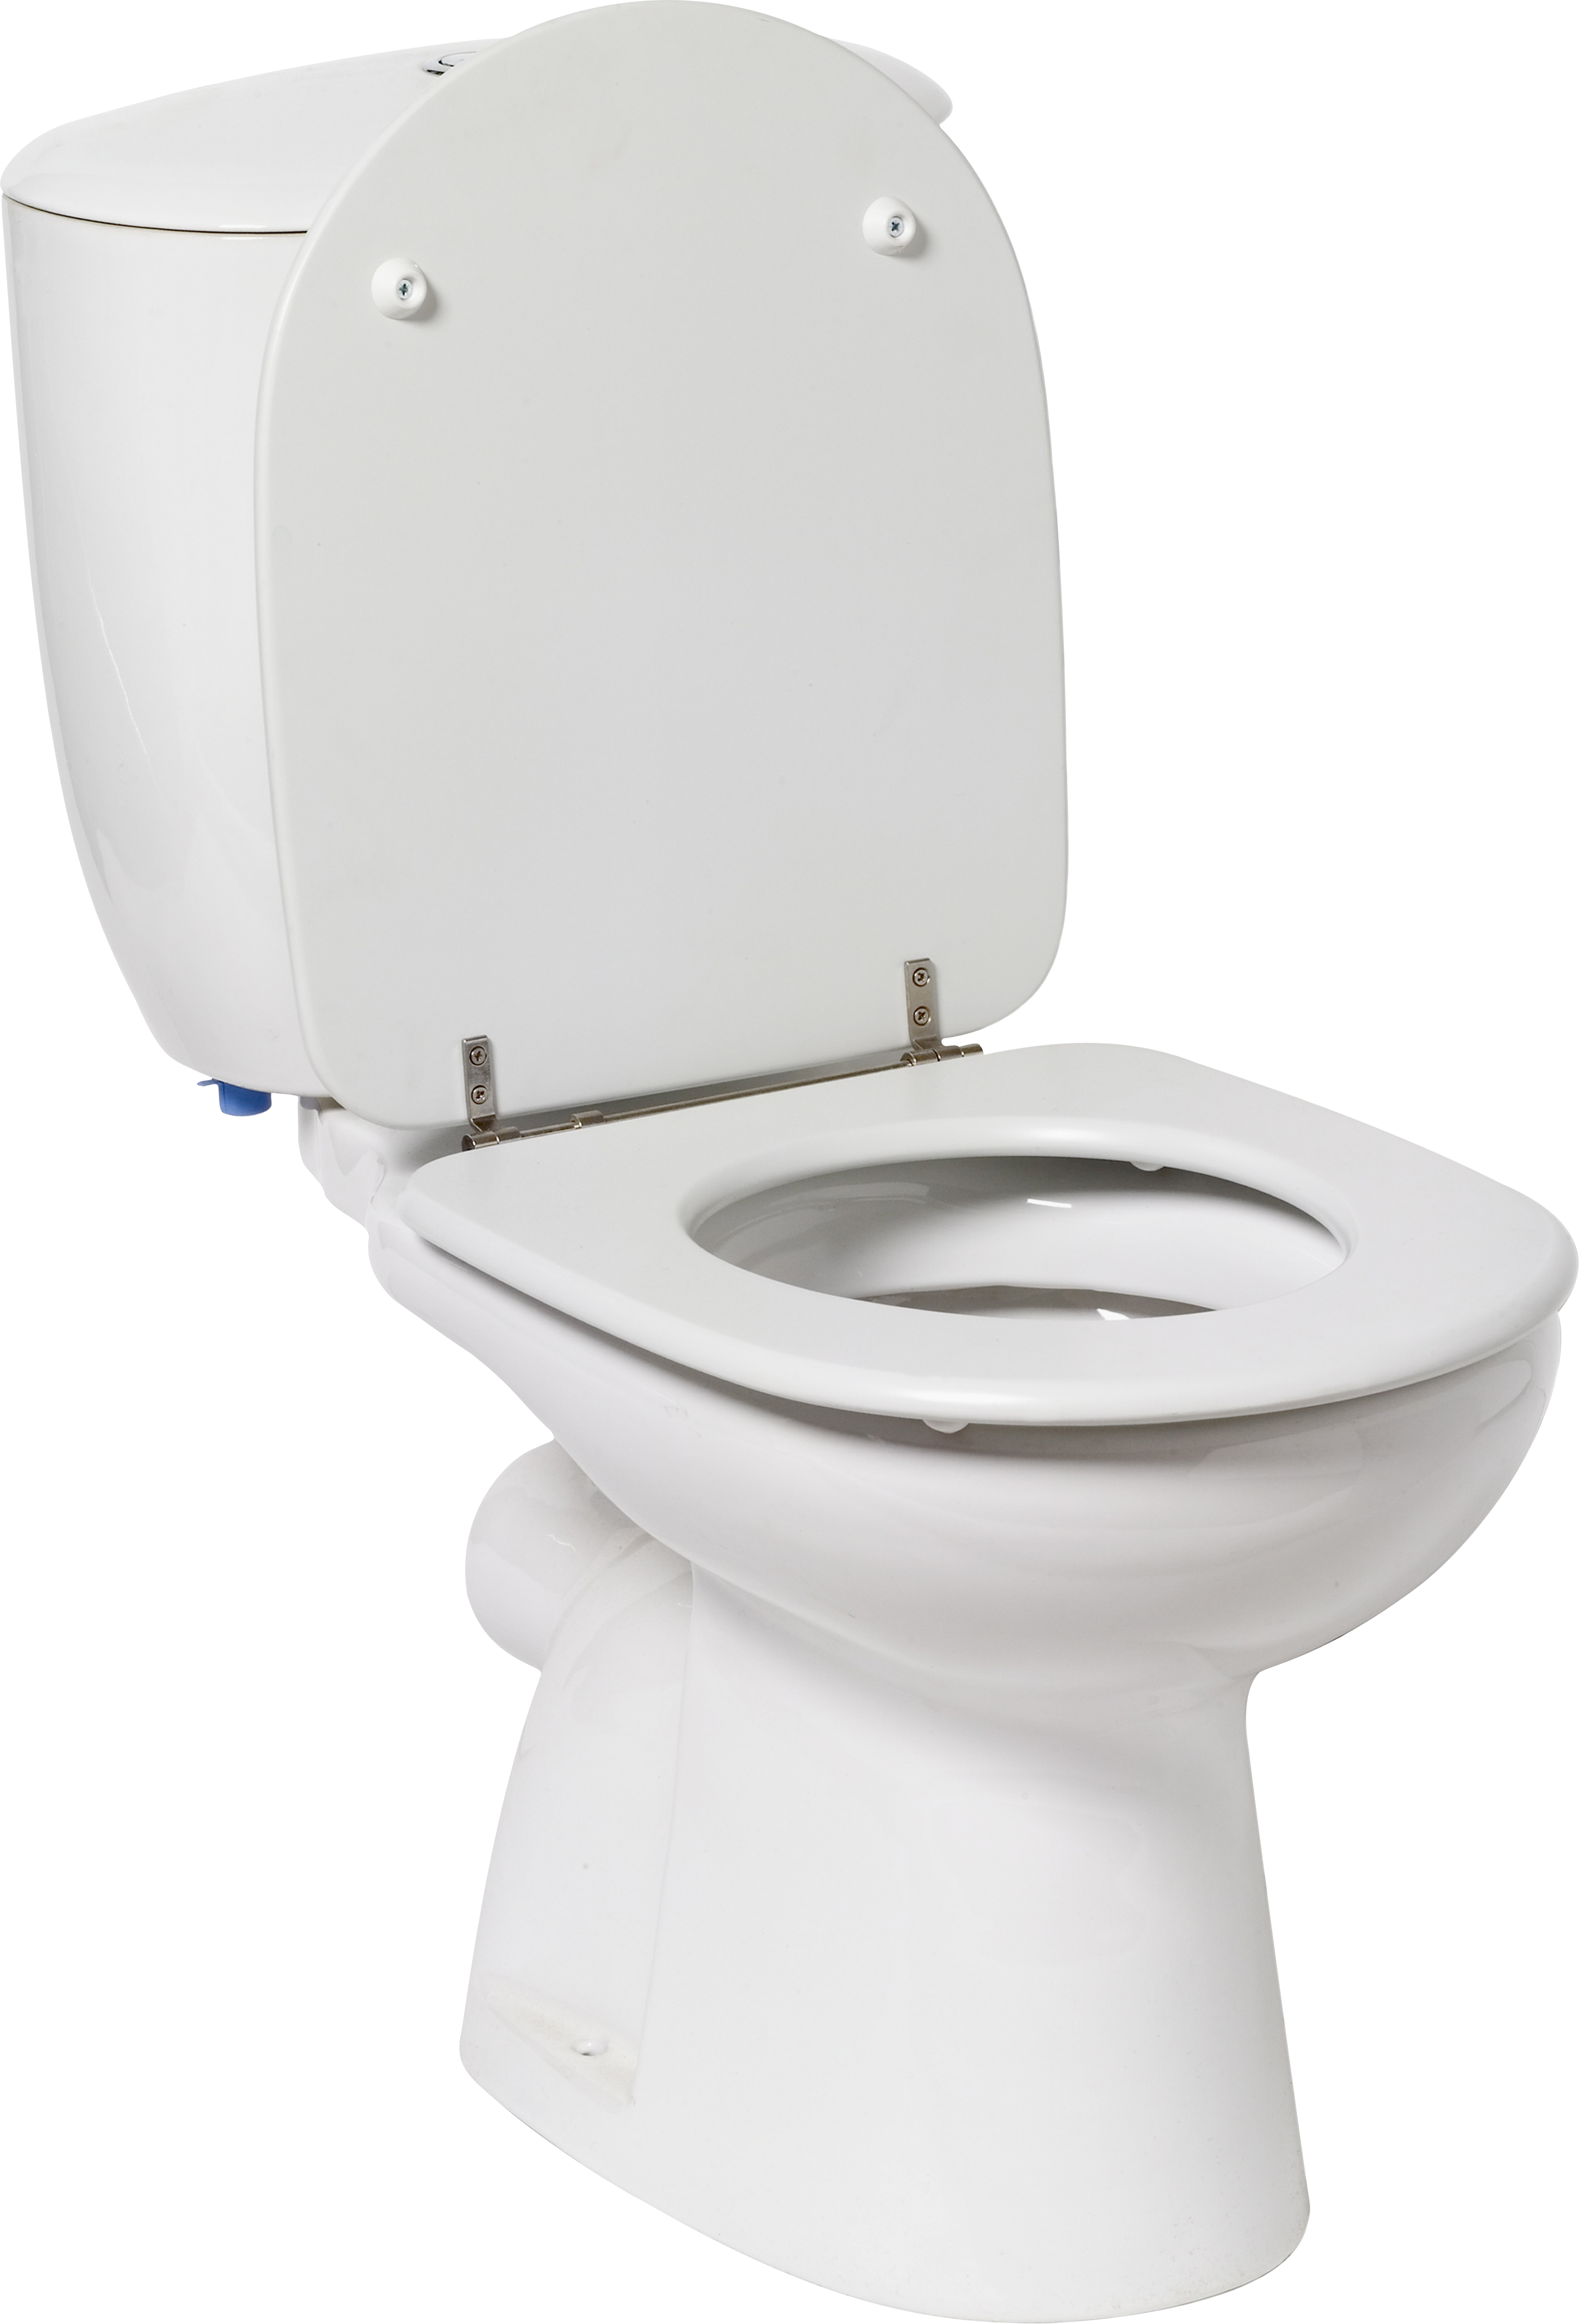 toilet png images are download crazypngm crazy png images download #29210